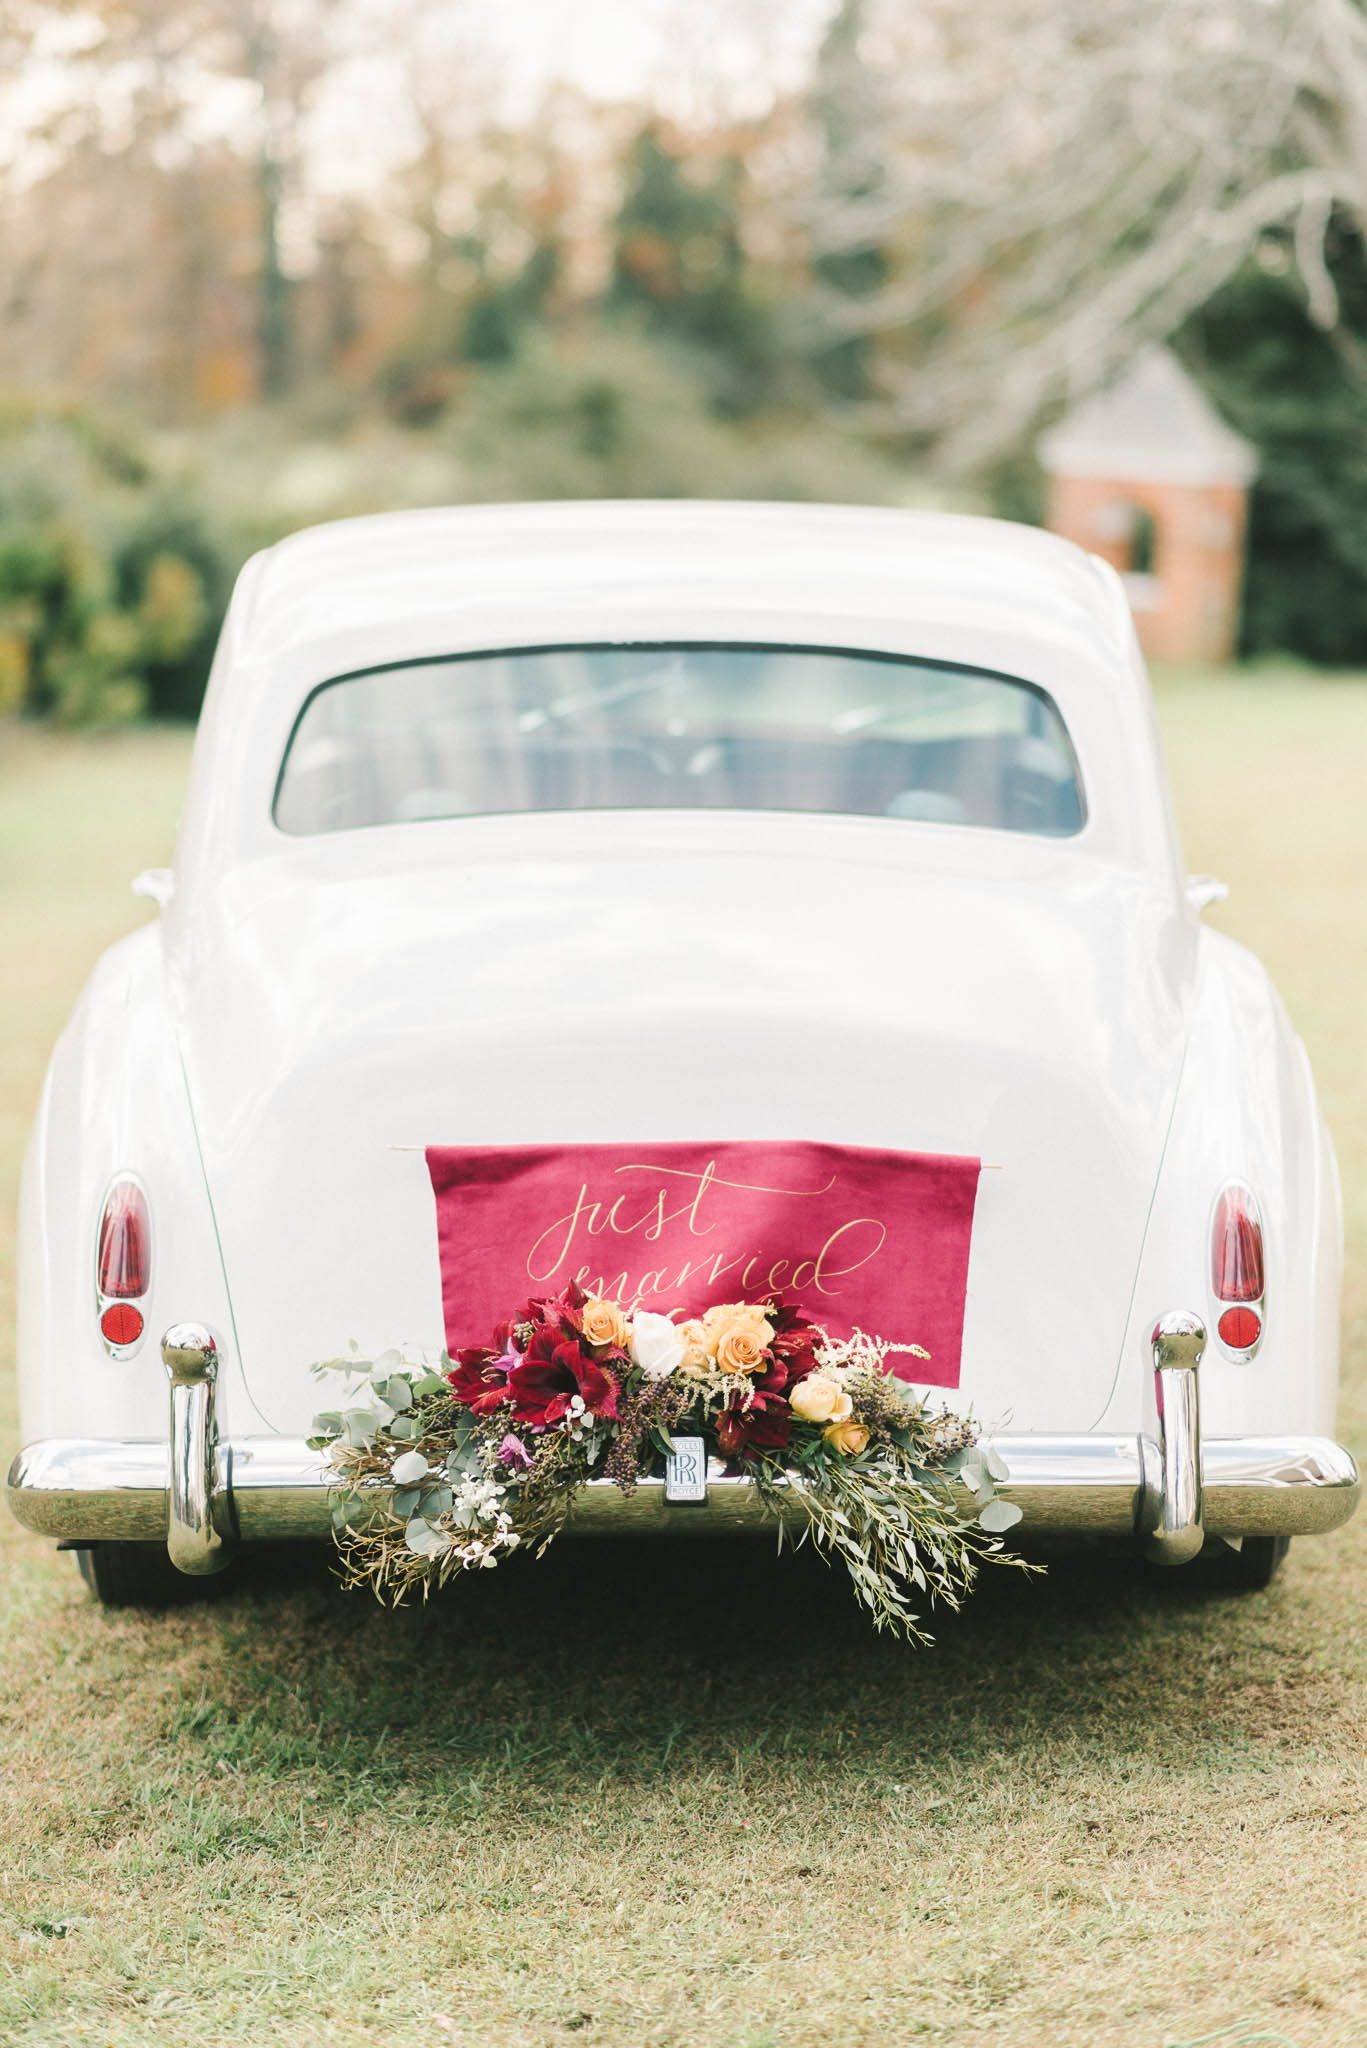 Wedding decorations on cars  Holiday Luxe Inspiration Shoot  The Getaway  Pinterest